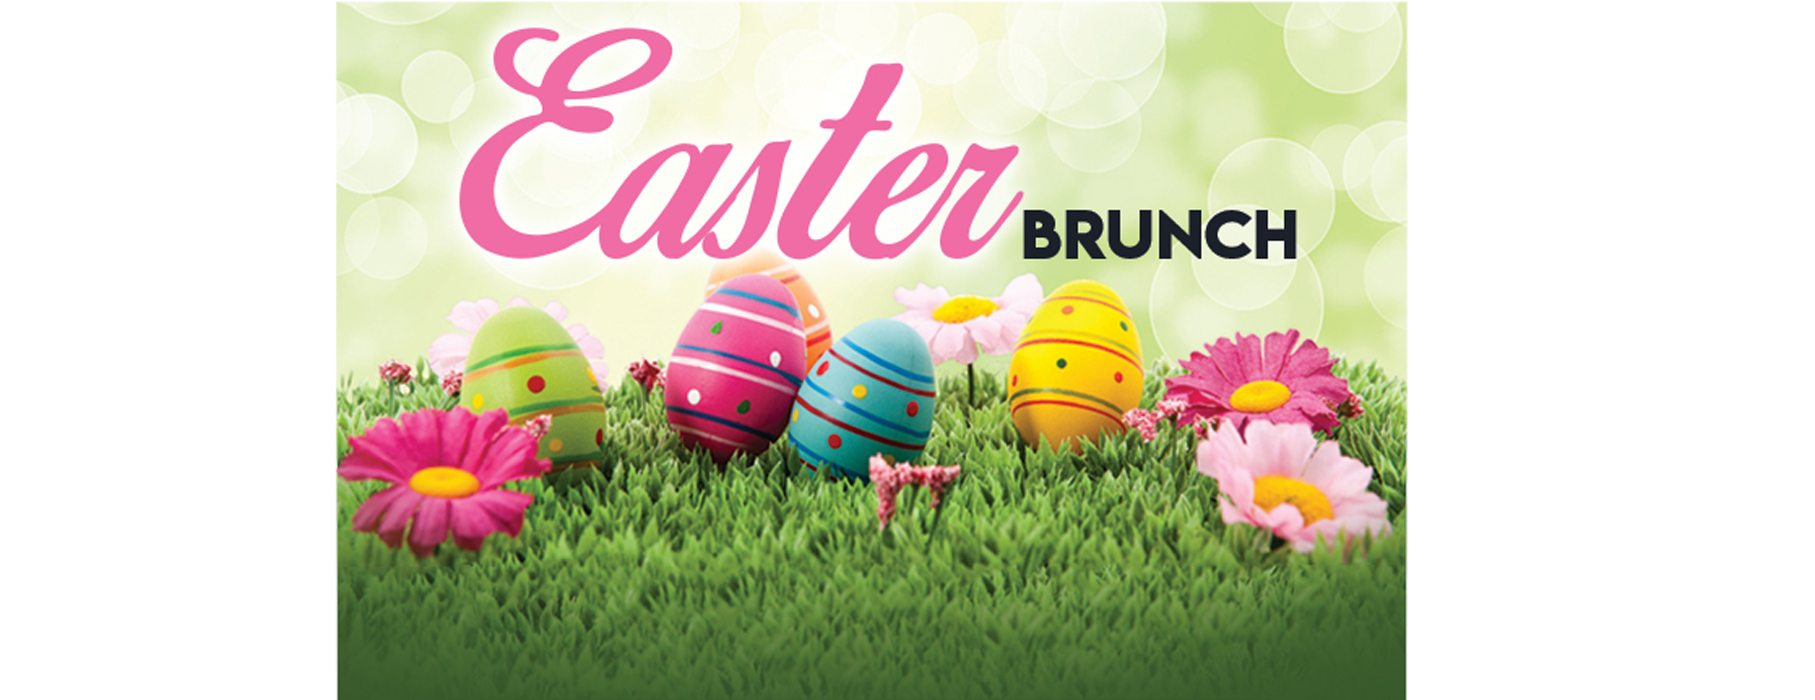 Easter Brunch in Bloor-Yorkville!